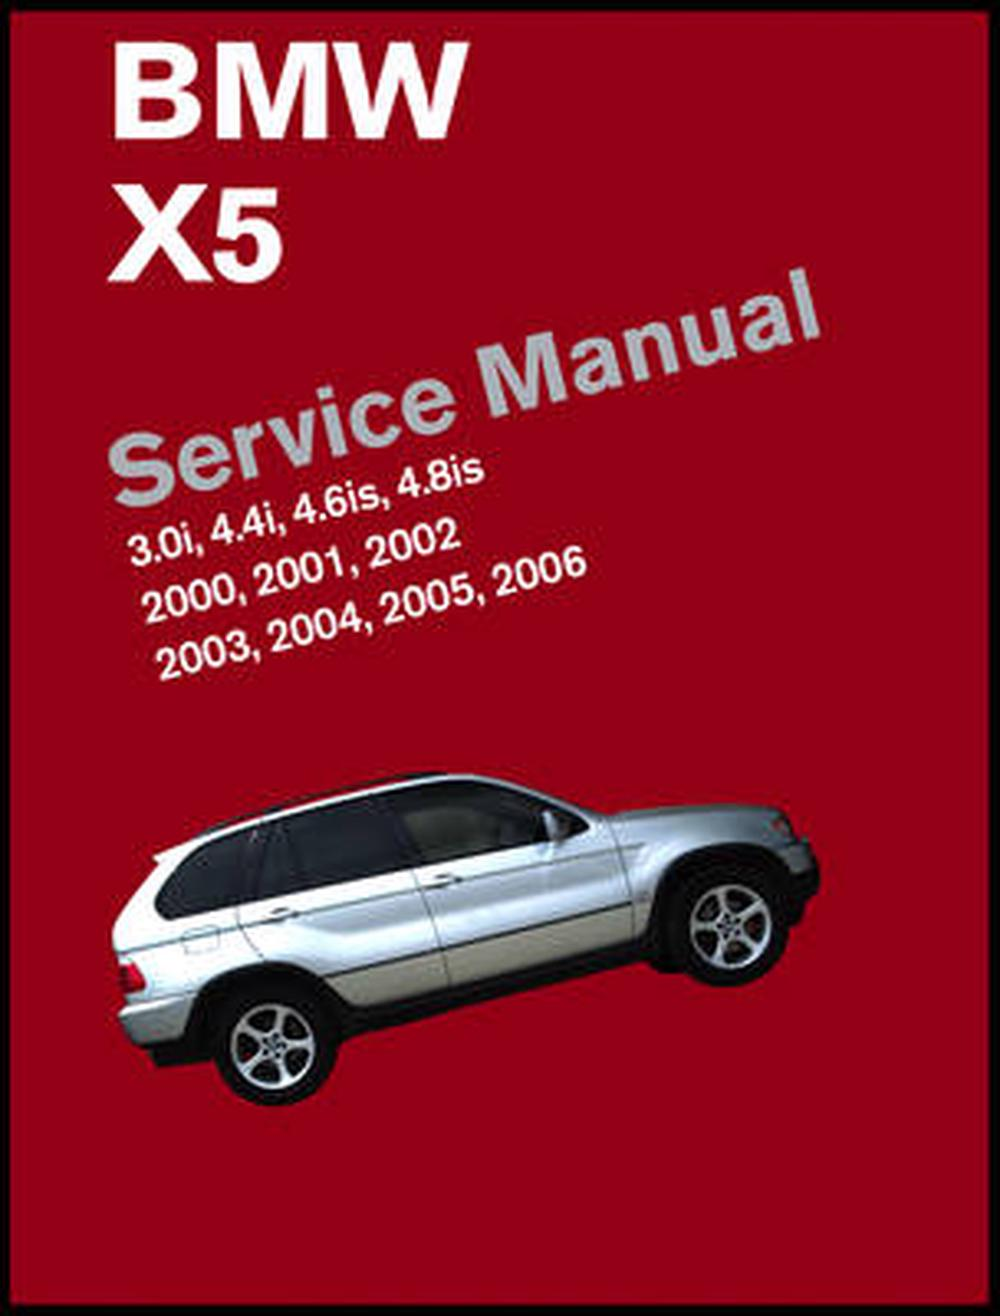 hight resolution of bmw x5 e53 service manual 2000 2001 2002 2003